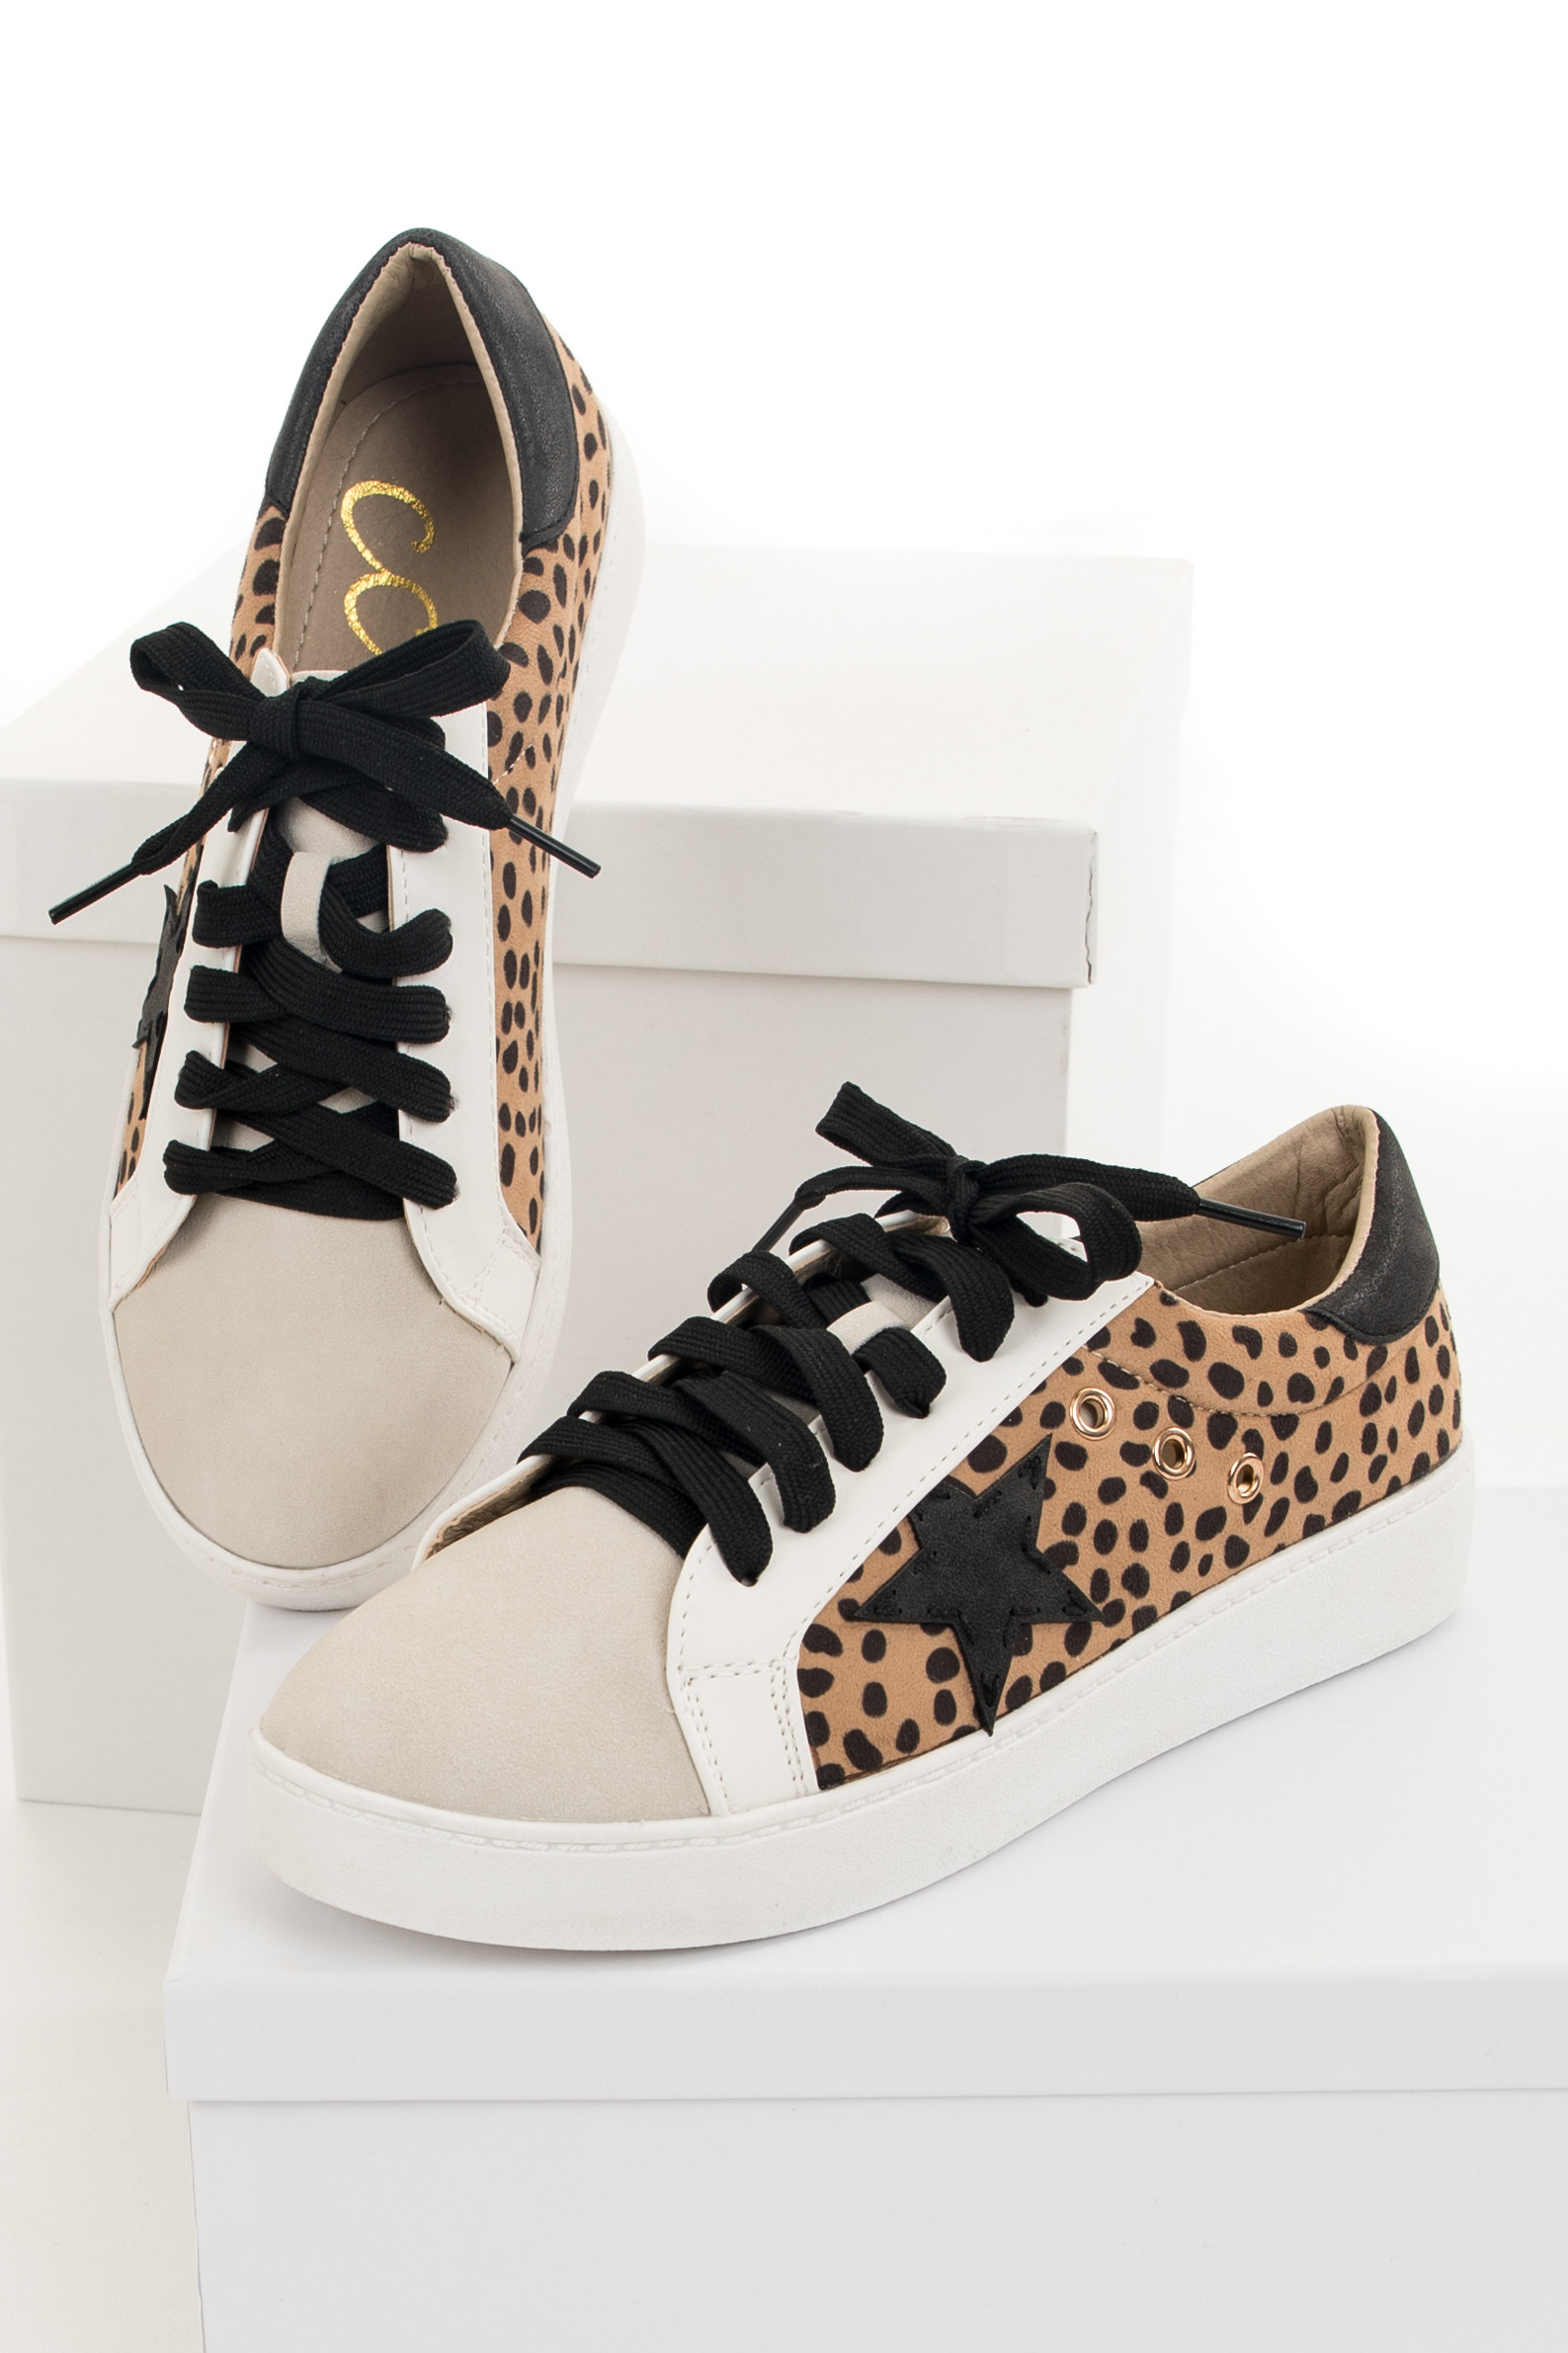 Ivory and Cheetah Print Lace Up Sneakers with Star Detail